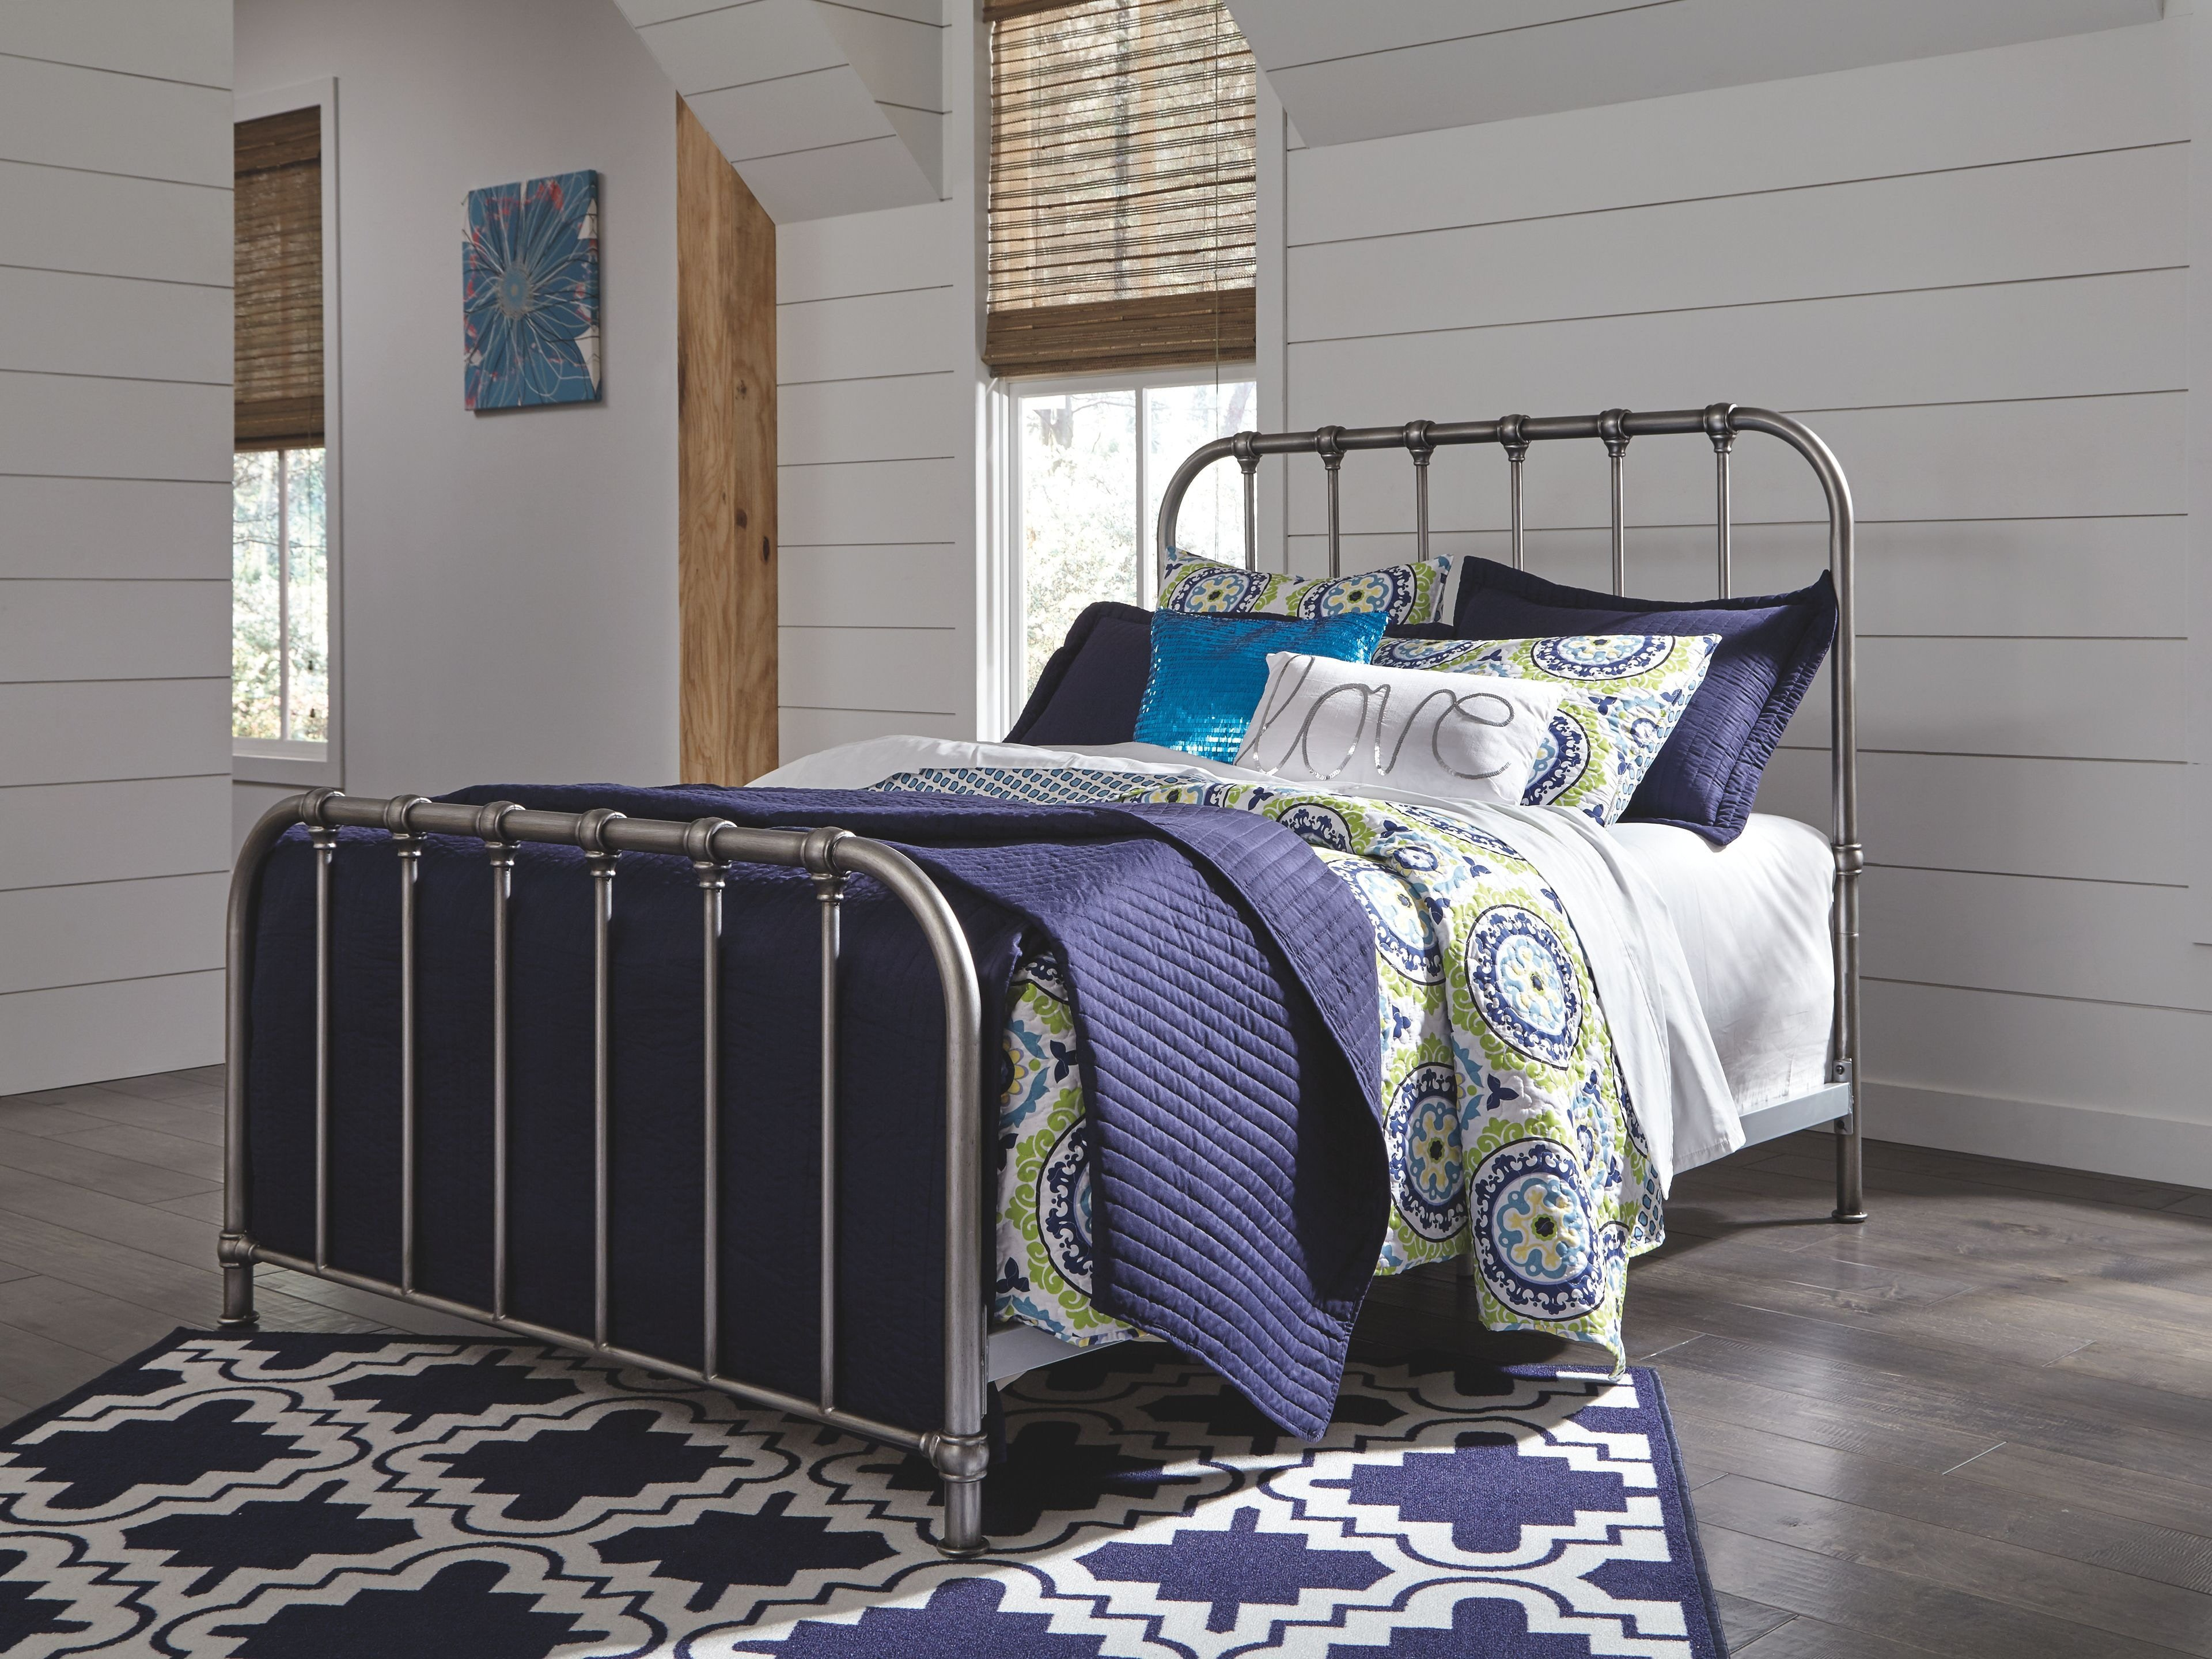 Wrought Iron Bedroom Set Elegant Signature Design by ashley Bedroom Nashburg Queen Metal Bed